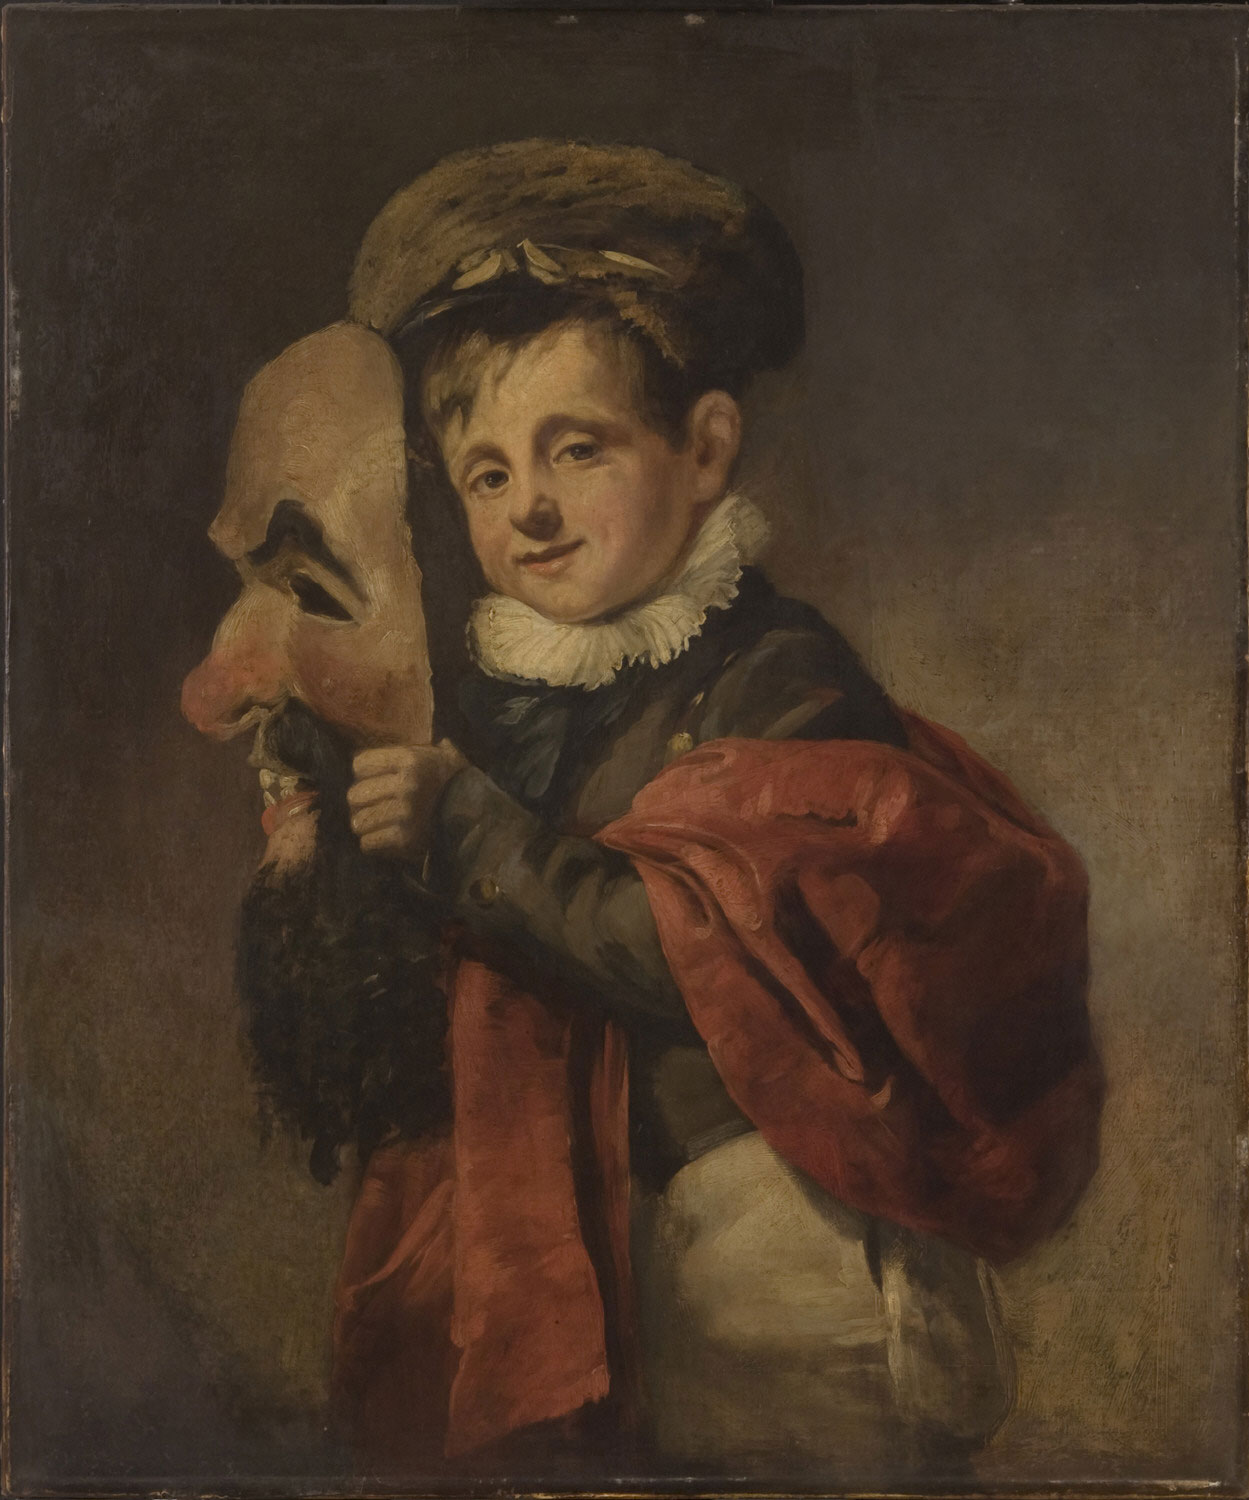 Boy with a Mask